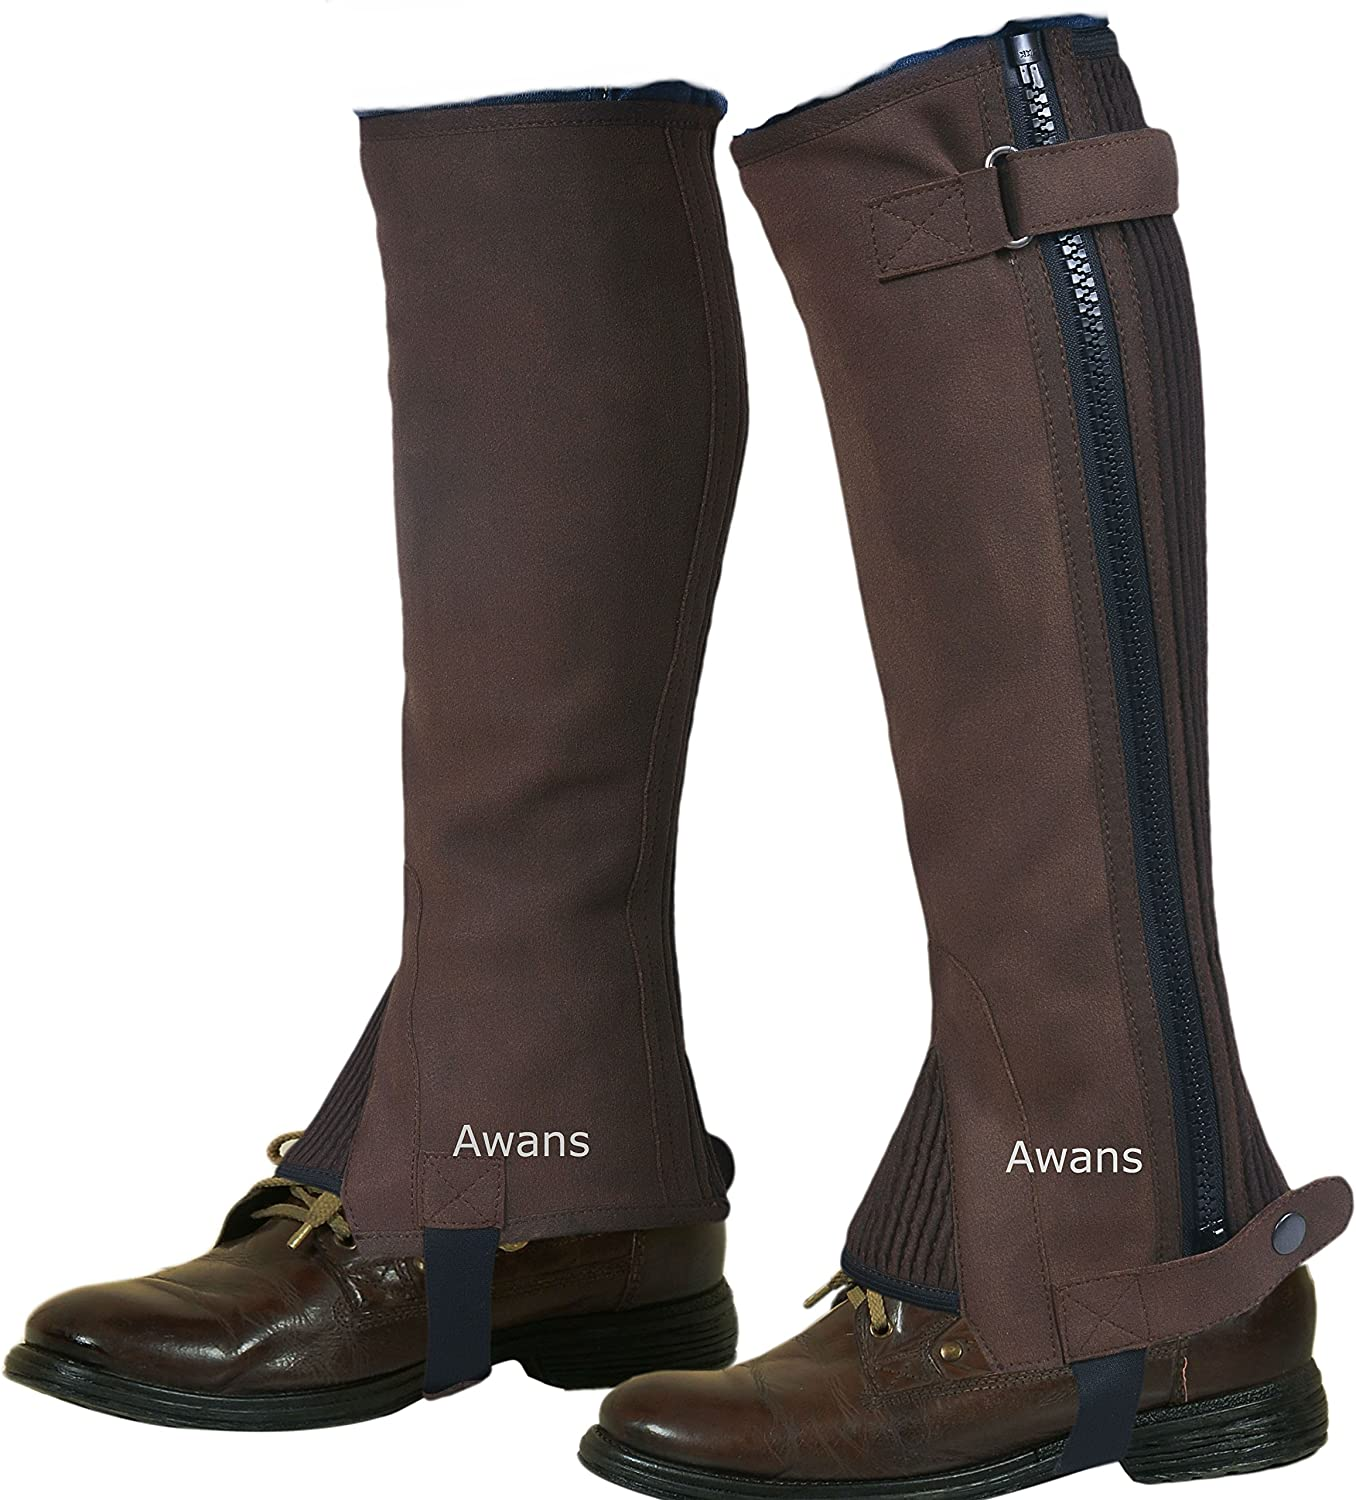 Horse Riding Half Chaps Gaitors Equestrian//New Unisex//Washable Amara Suede Leather Brown